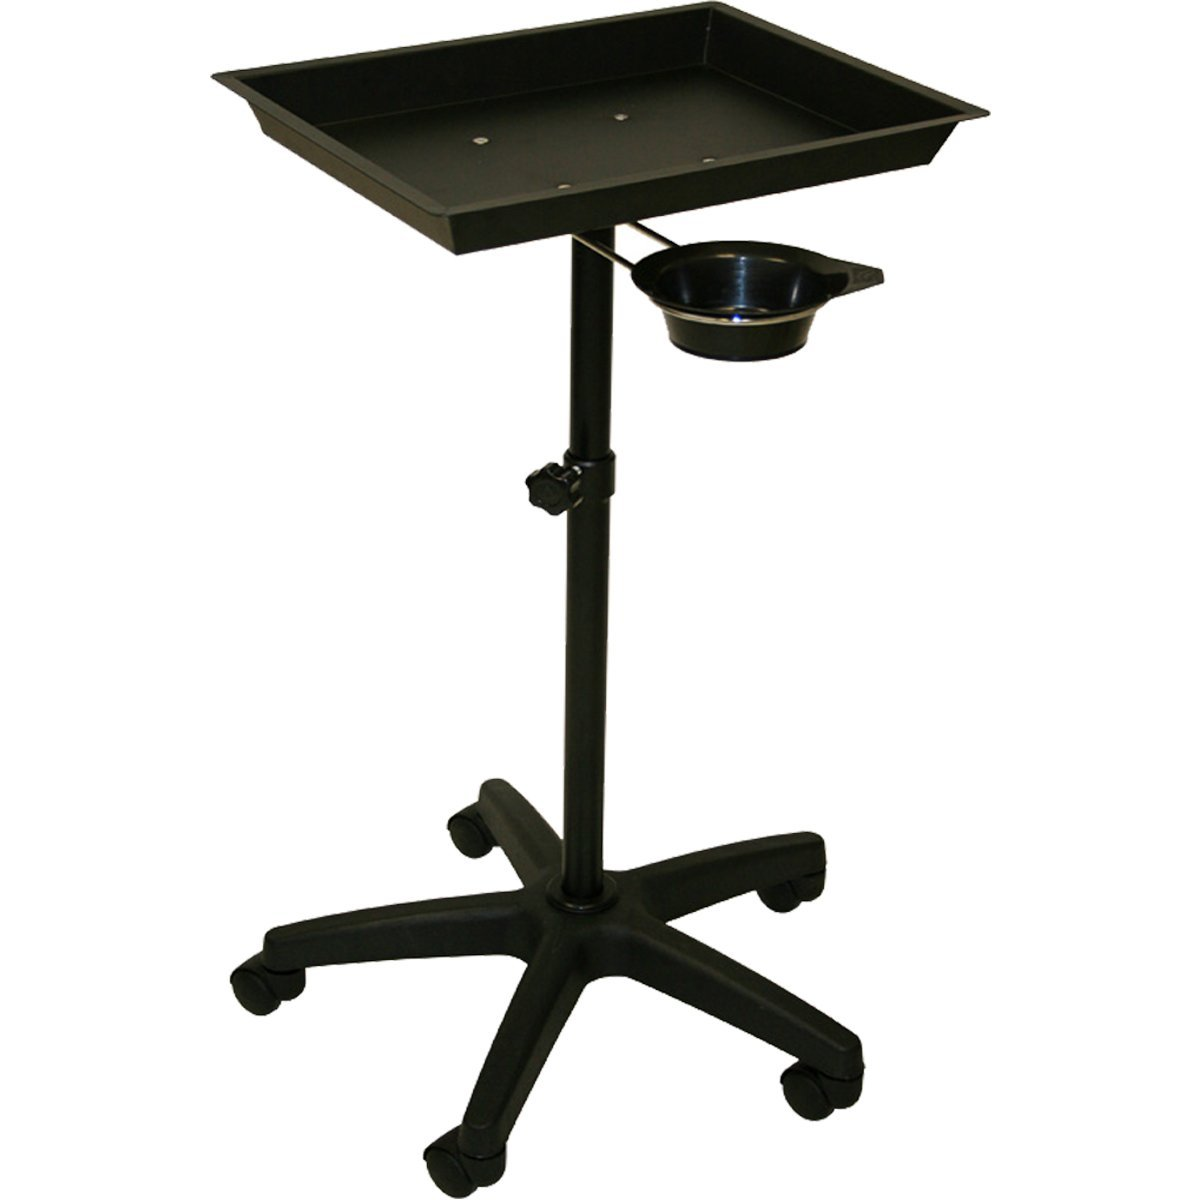 InkBed Black Steel Air-Lift Utility Tray with Removable Utility Cup Tattoo Equipment